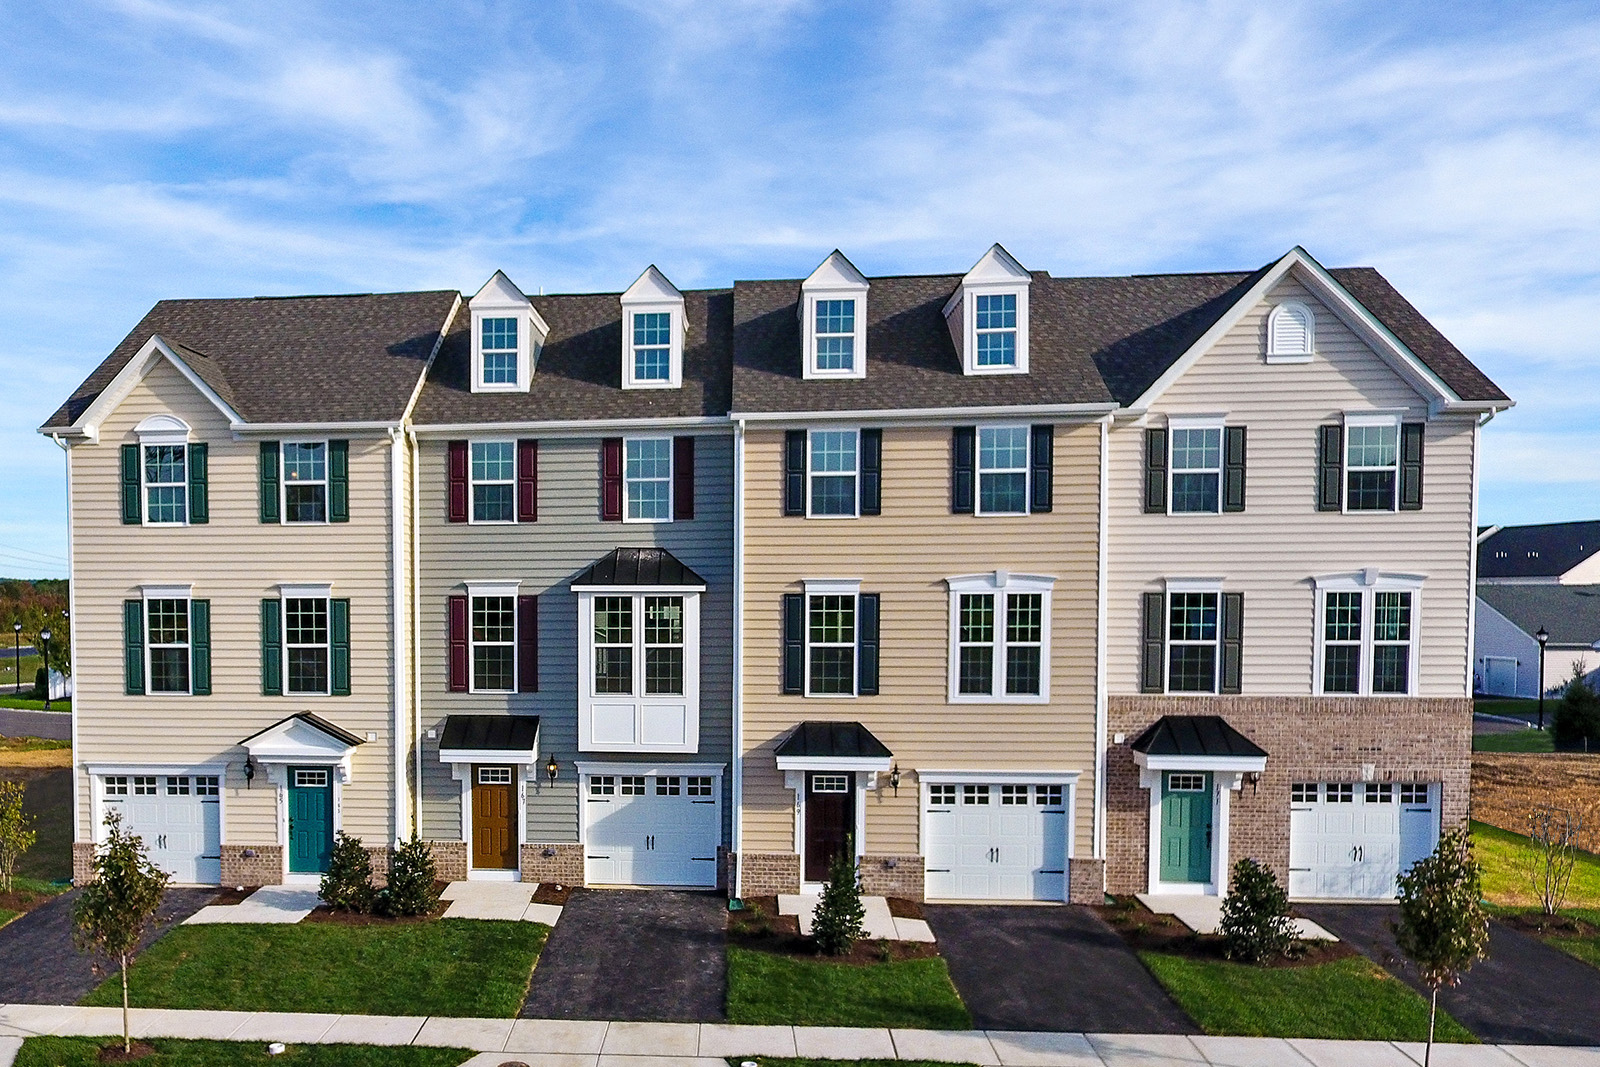 Eastampton Village Townhomes